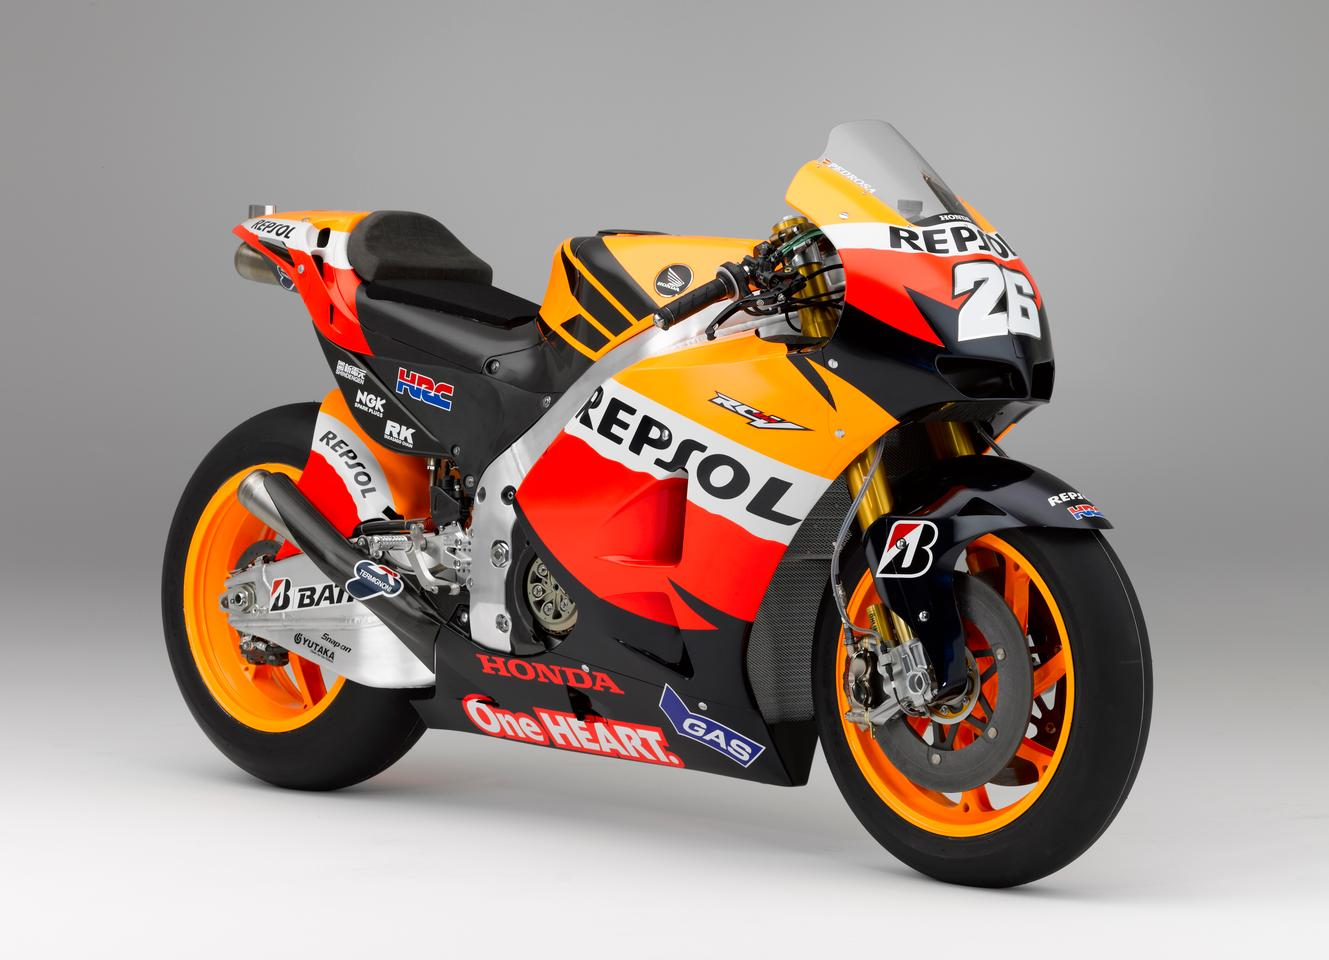 Honda launches new Moto GP bike for 2012